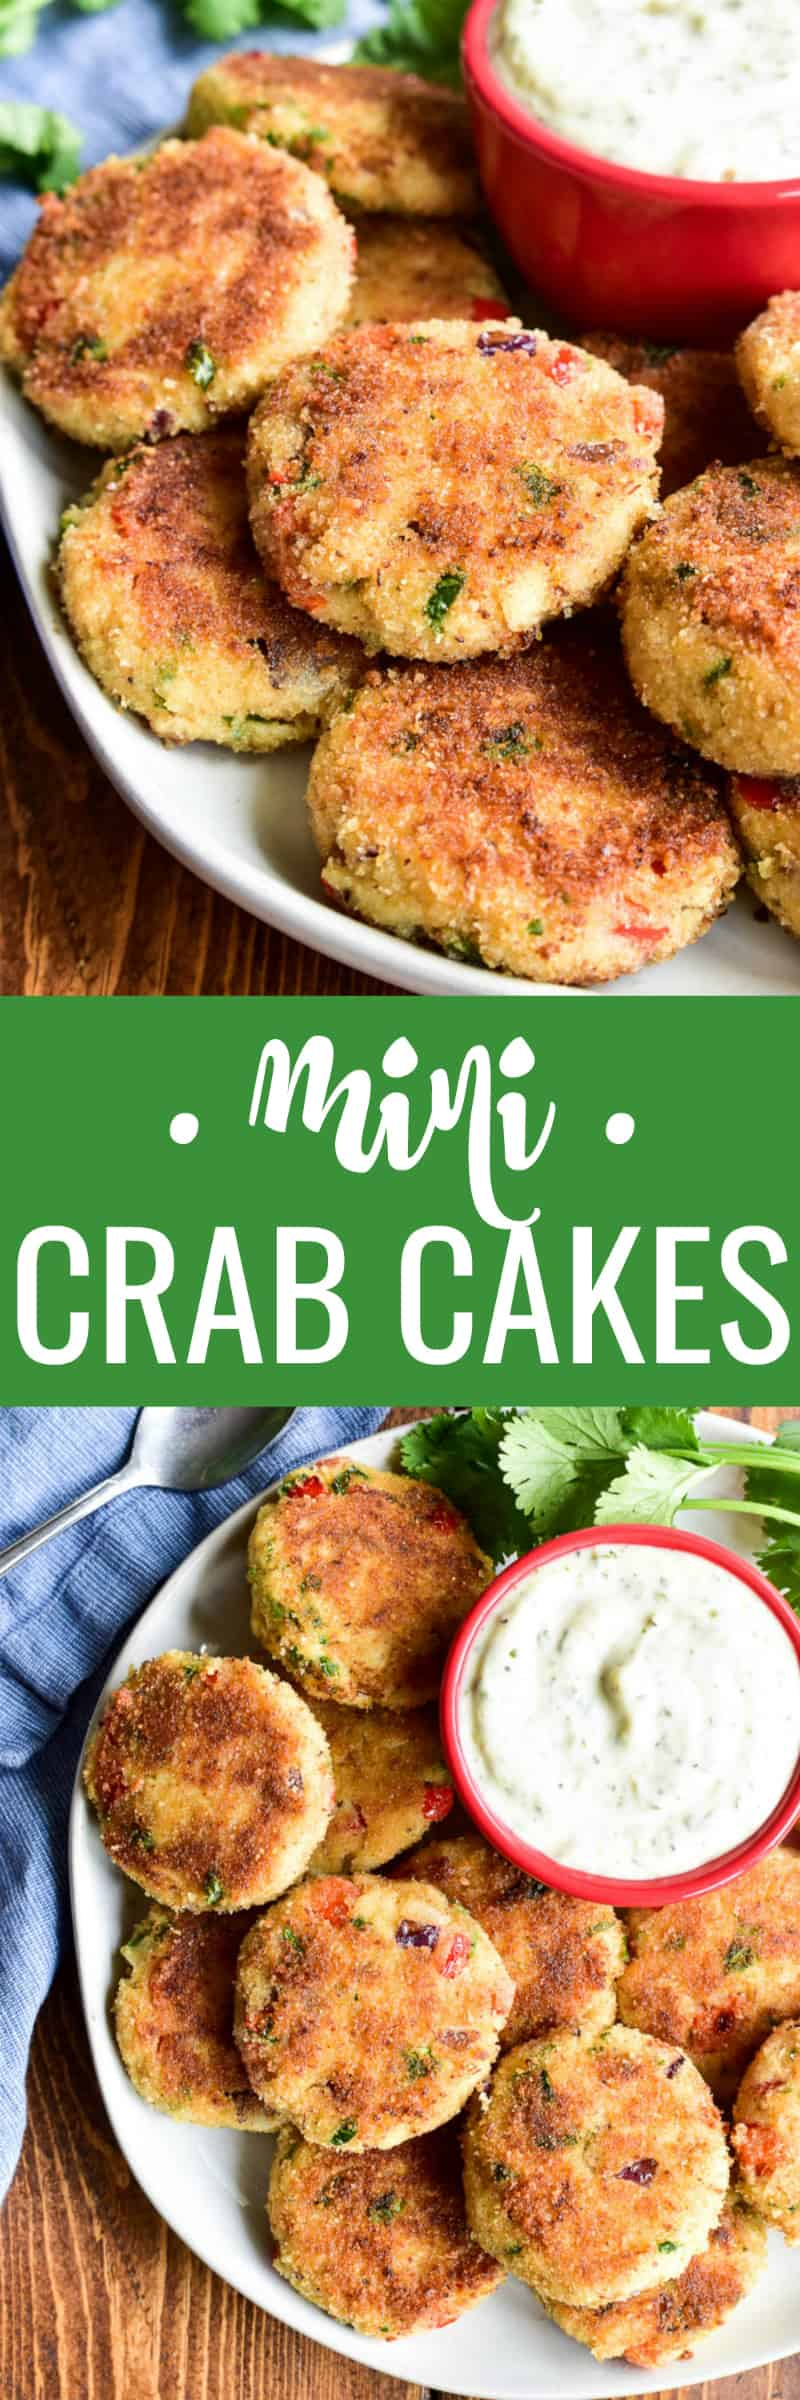 Mini Crab Cakes make the perfect holiday appetizer! All the flavors of the delicious crab cakes you love in a delicious bite-sized appetizer that's party-friendly and sure to be a favorite. These crab cakes are loaded with lump crab meat, red pepper, red onion, and cilantro. They're packed with flavor and delicious all on their own or with homemade garlic aioli.